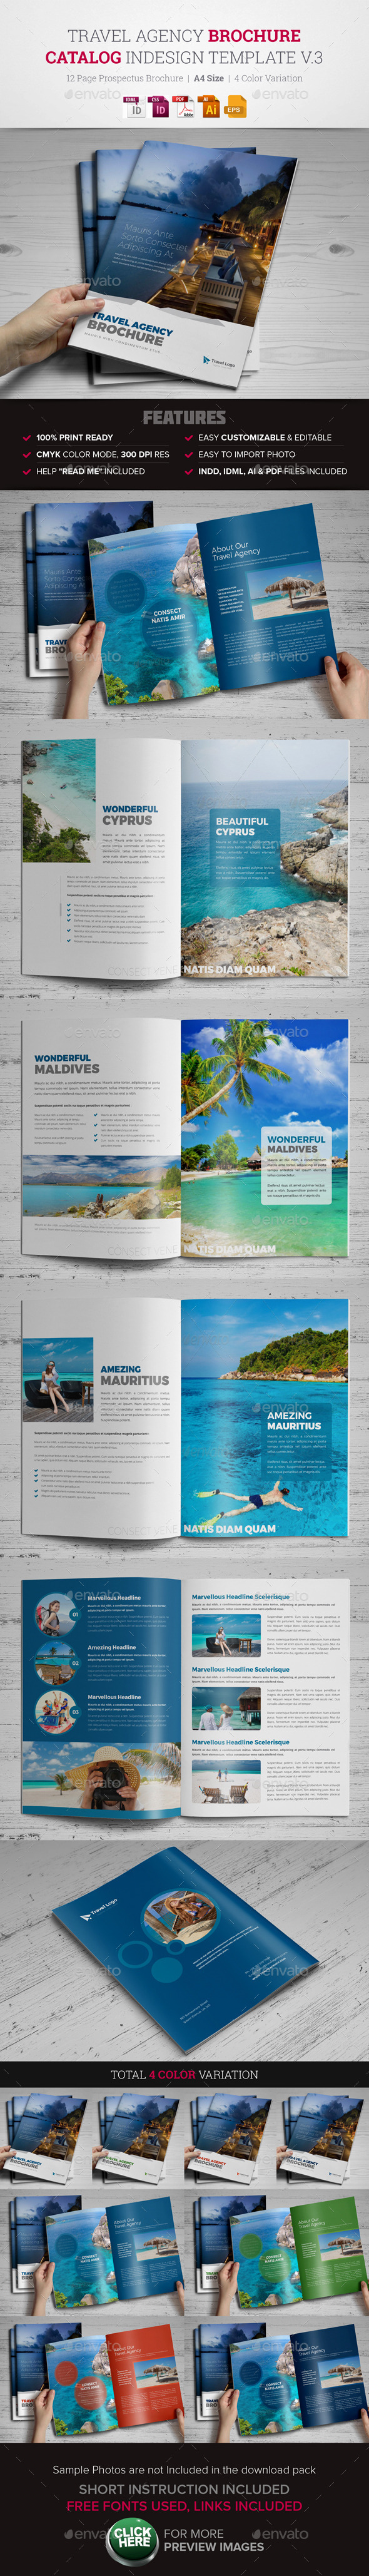 Travel Agency Brochure Catalog InDesign v3